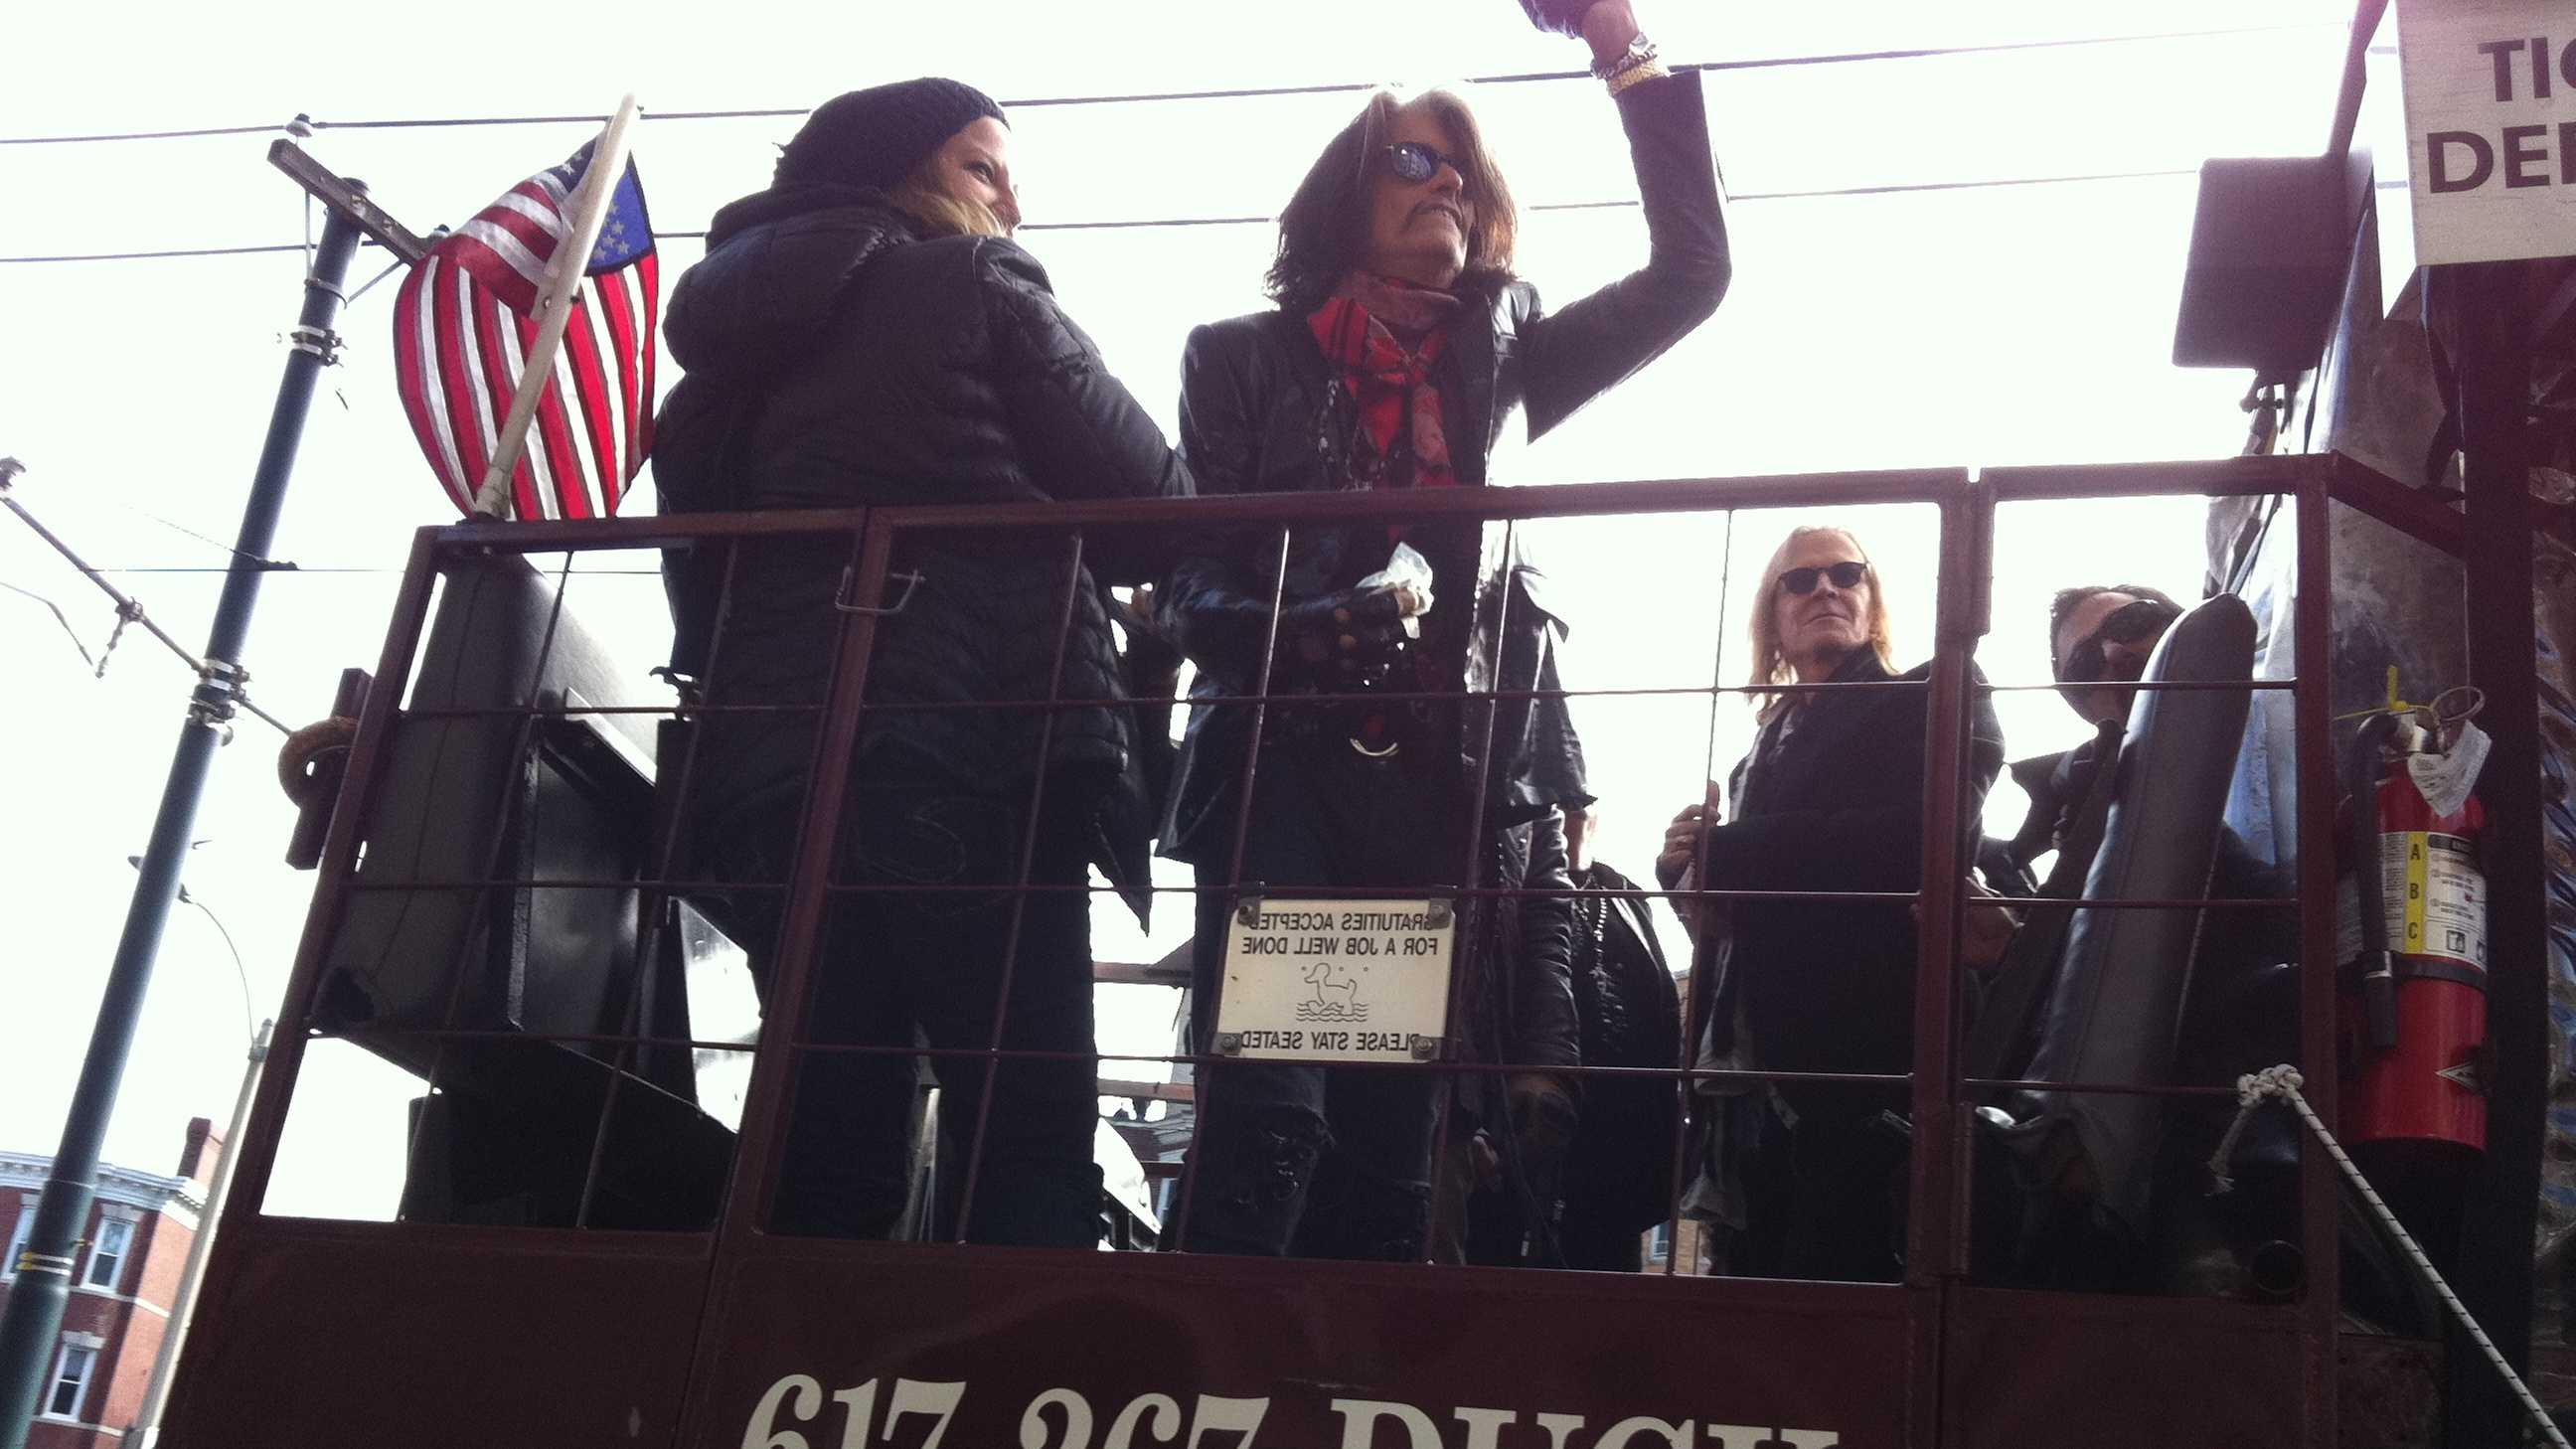 Guitarist Joe Perry waves to the crowd from a duckboat.